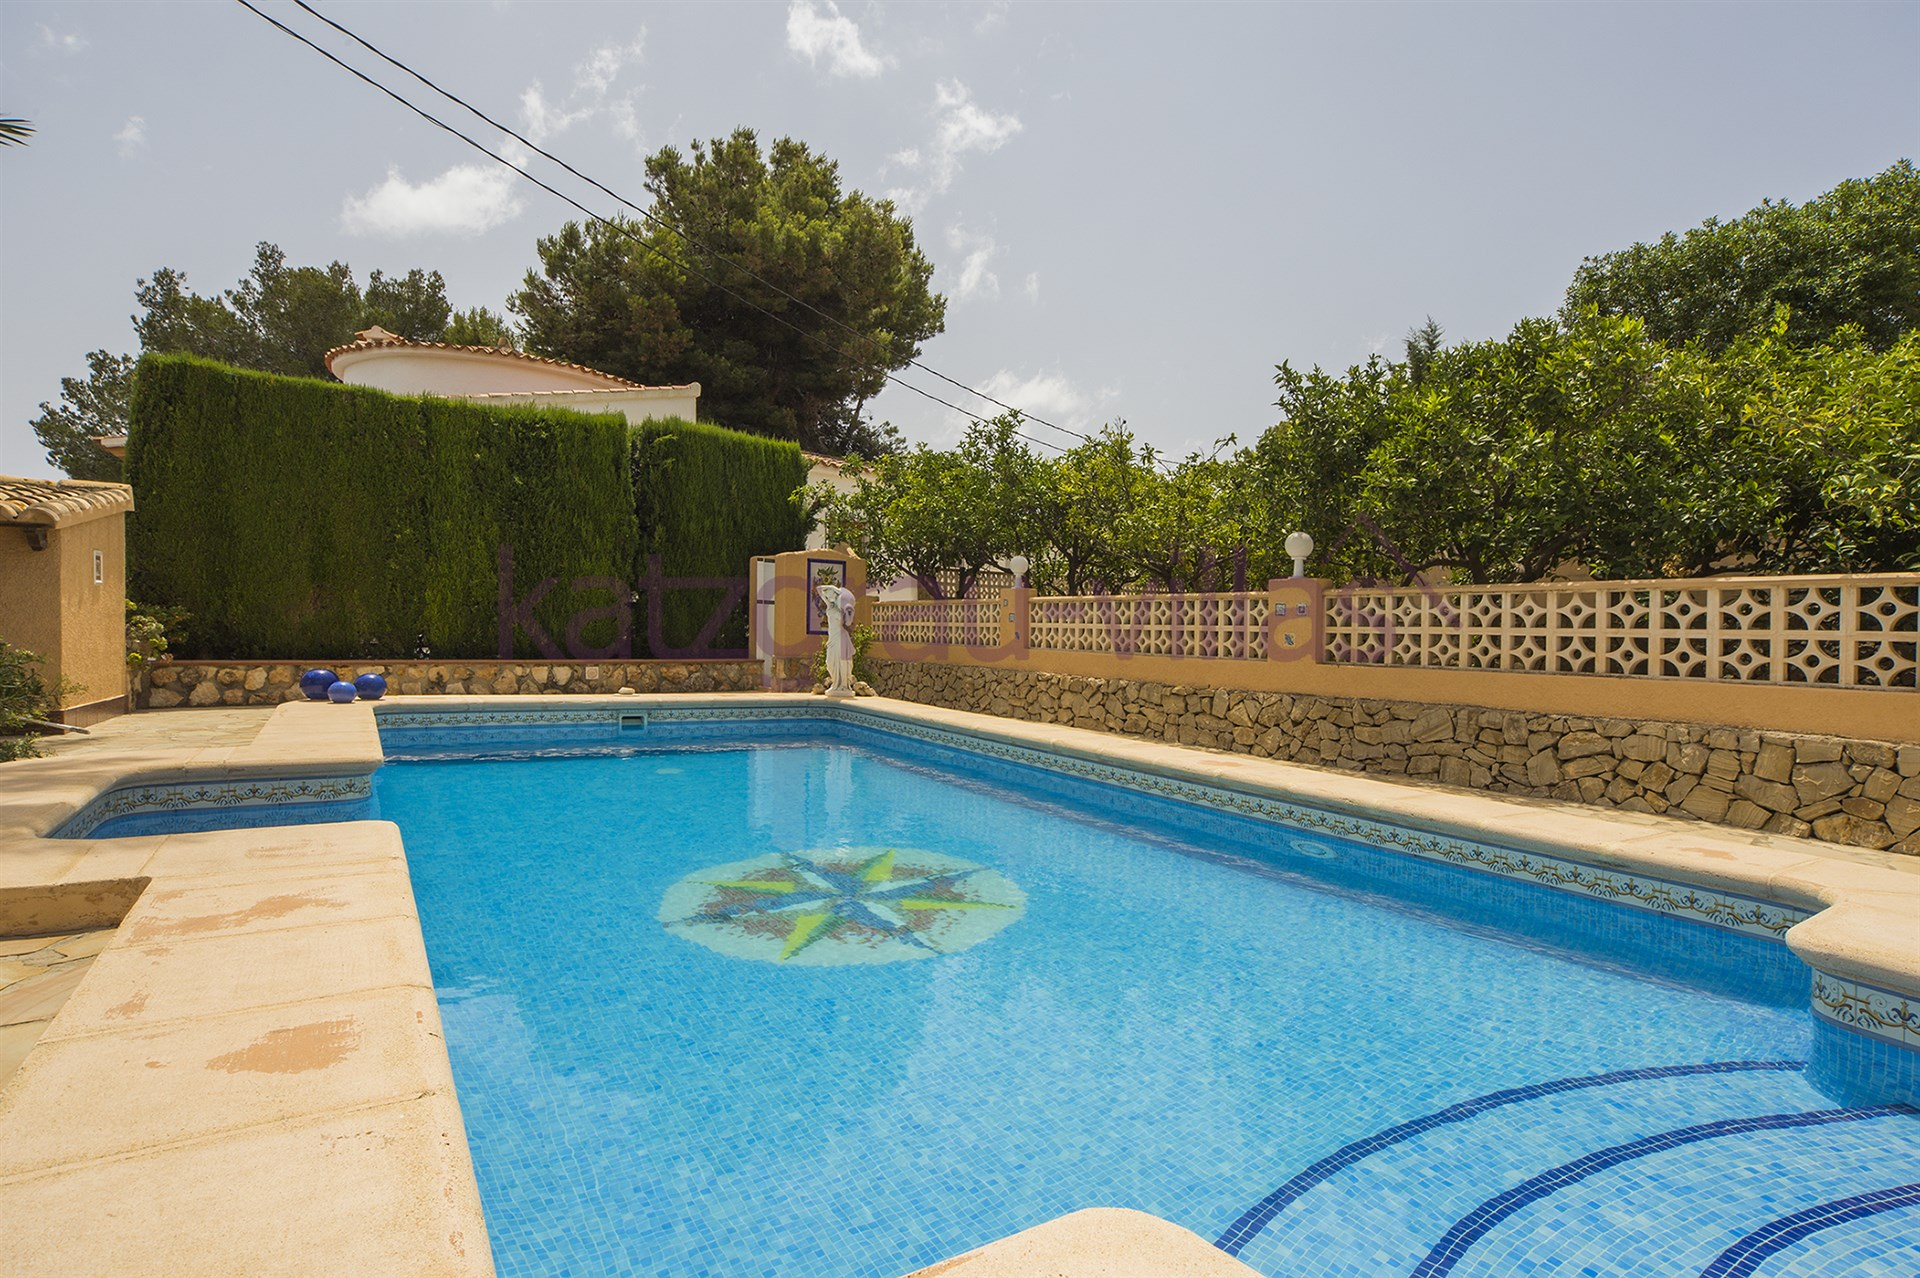 Villa en location de vacances en moraira alicante casa for Prix piscine 9x5